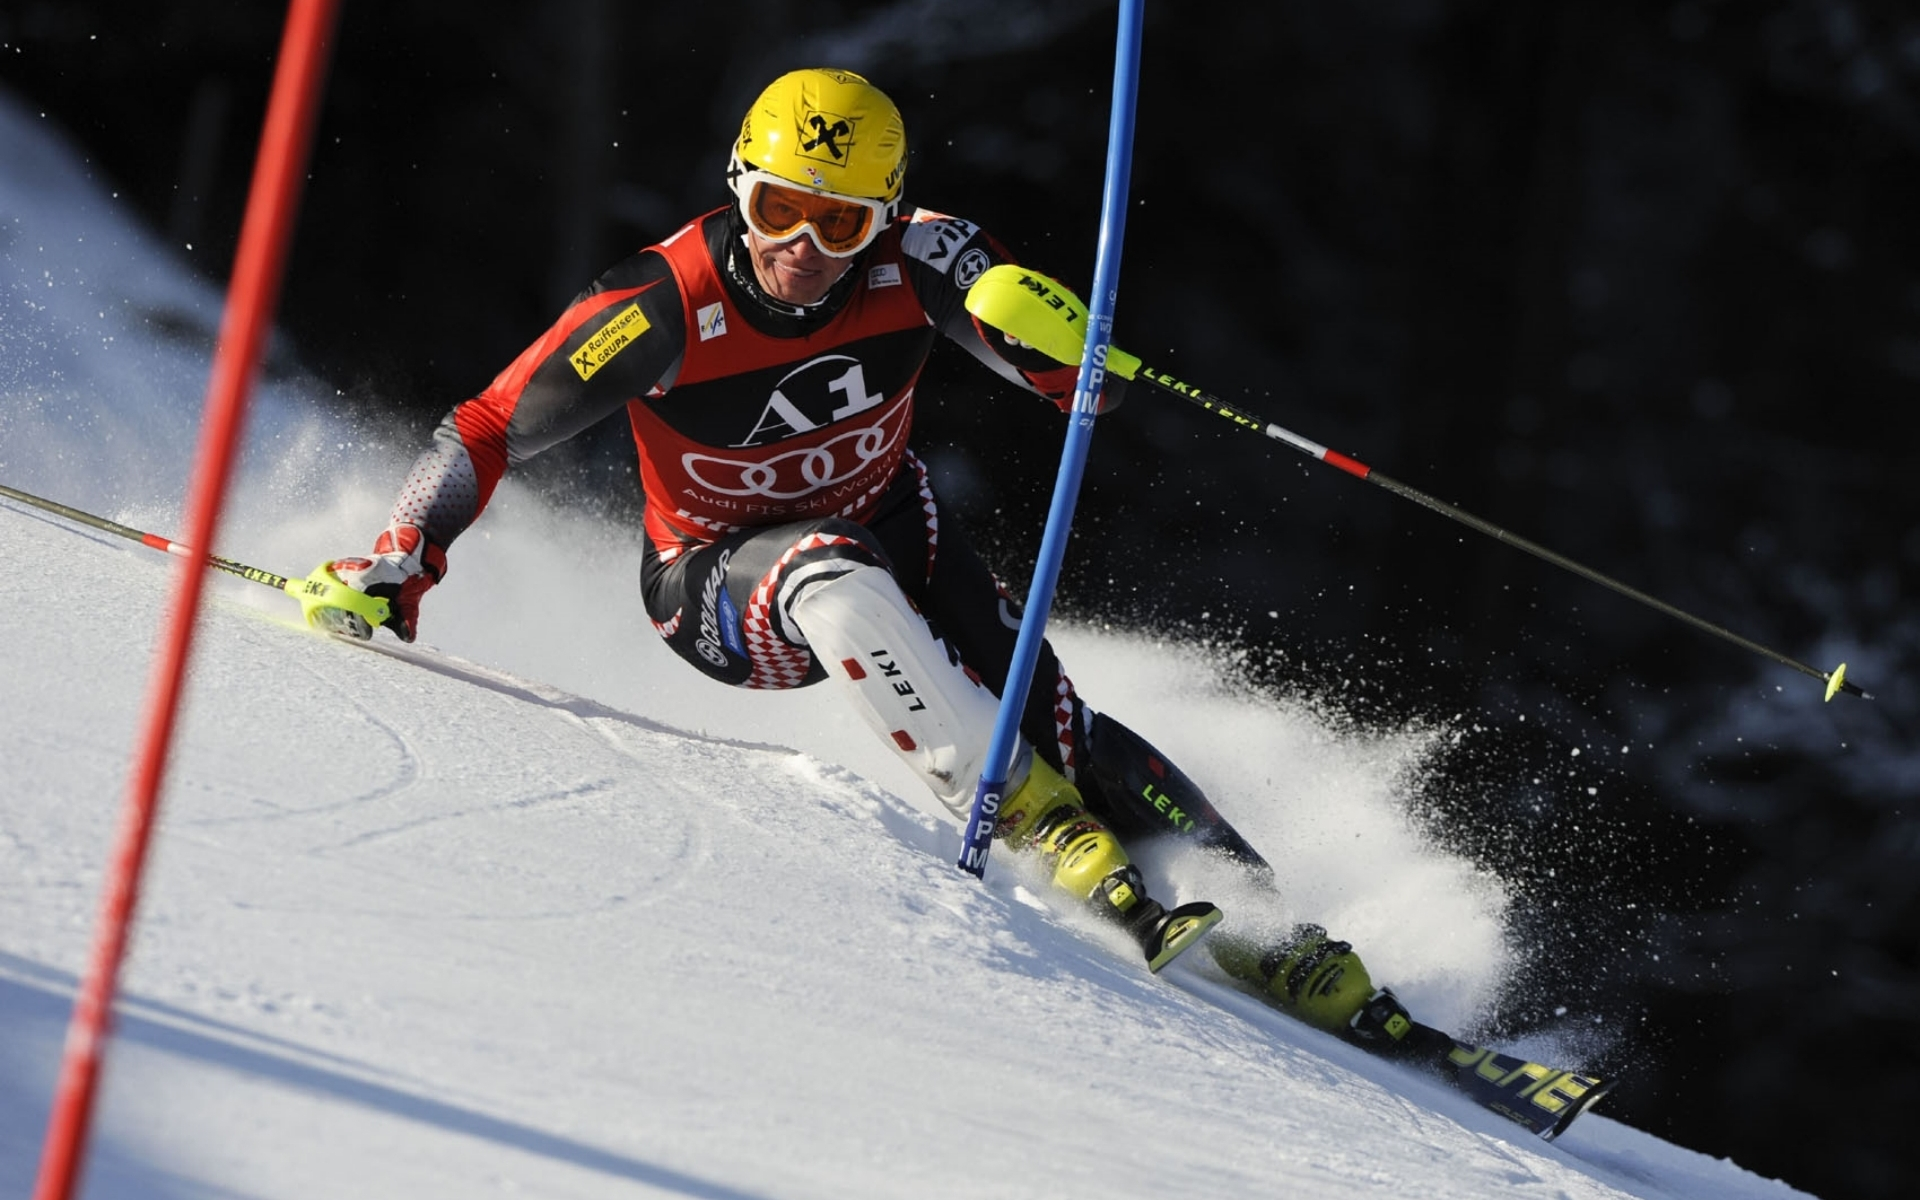 competitive skiing wallpaper 53318